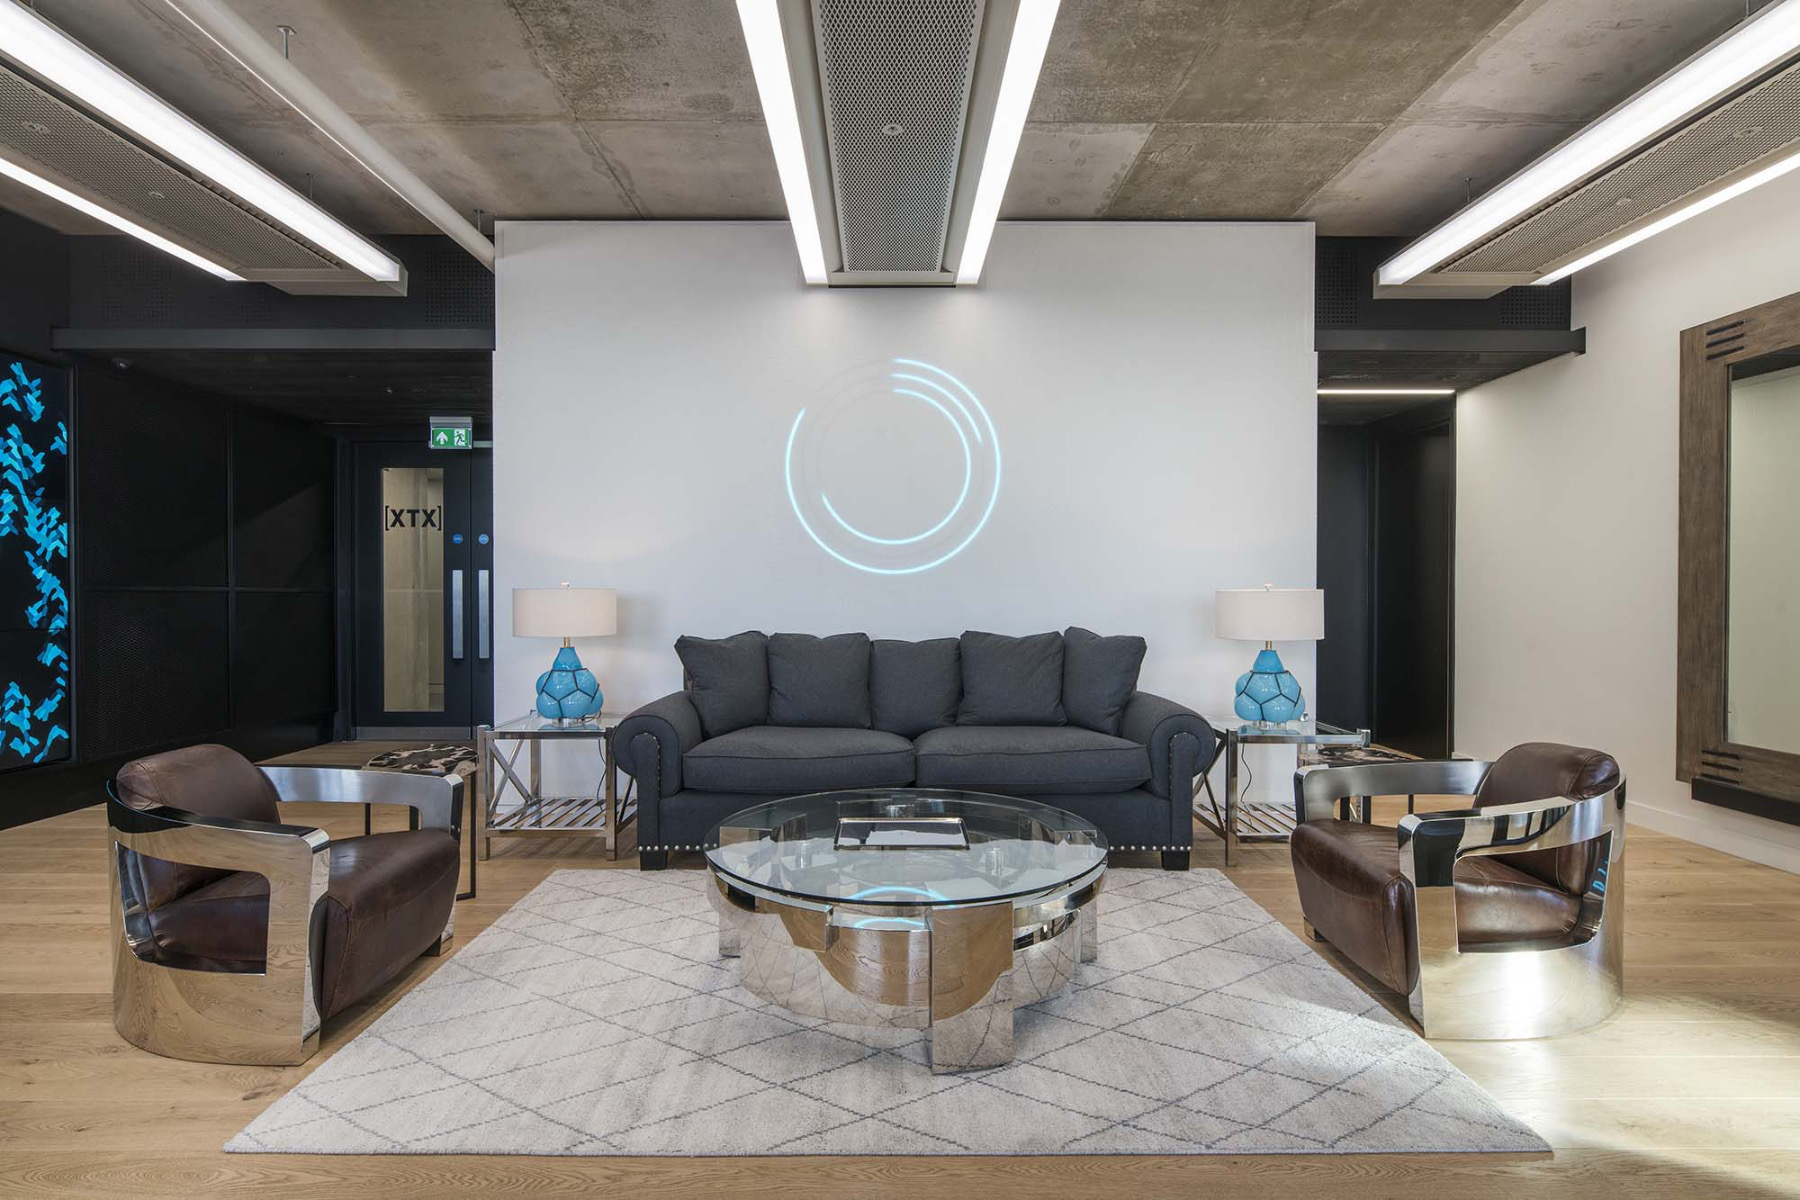 xtx-markets-london-office-1